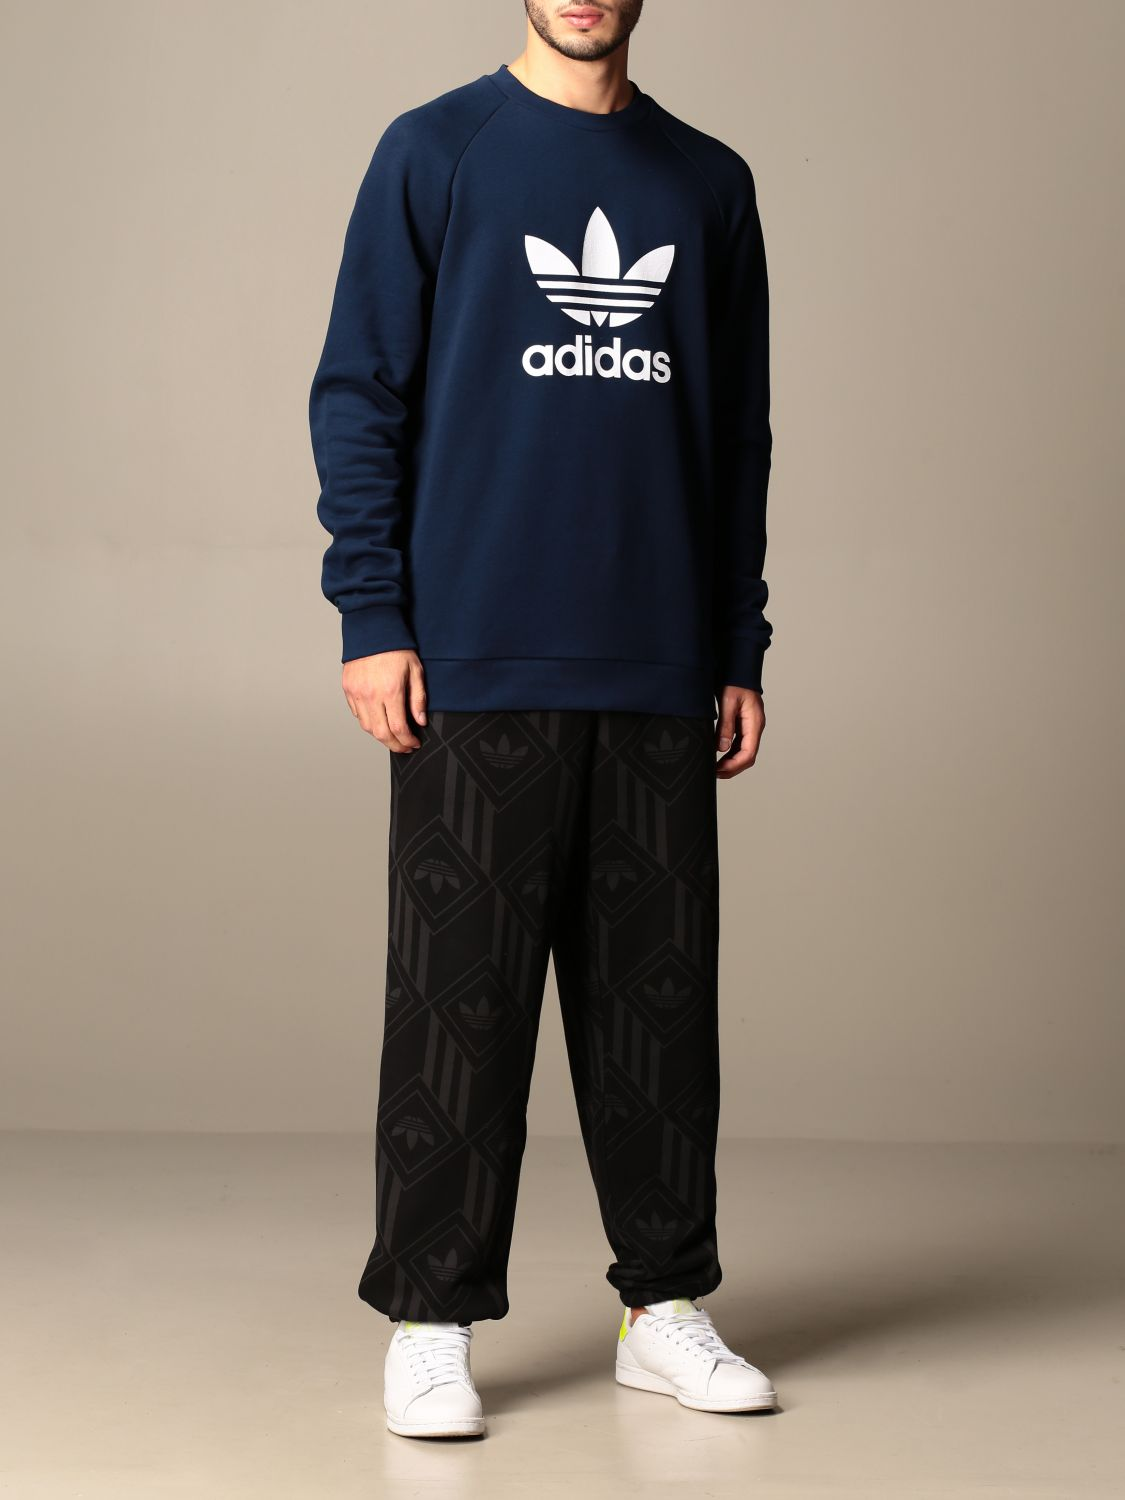 Sweatshirt Adidas Originals: Sweatshirt men Adidas Originals navy 2